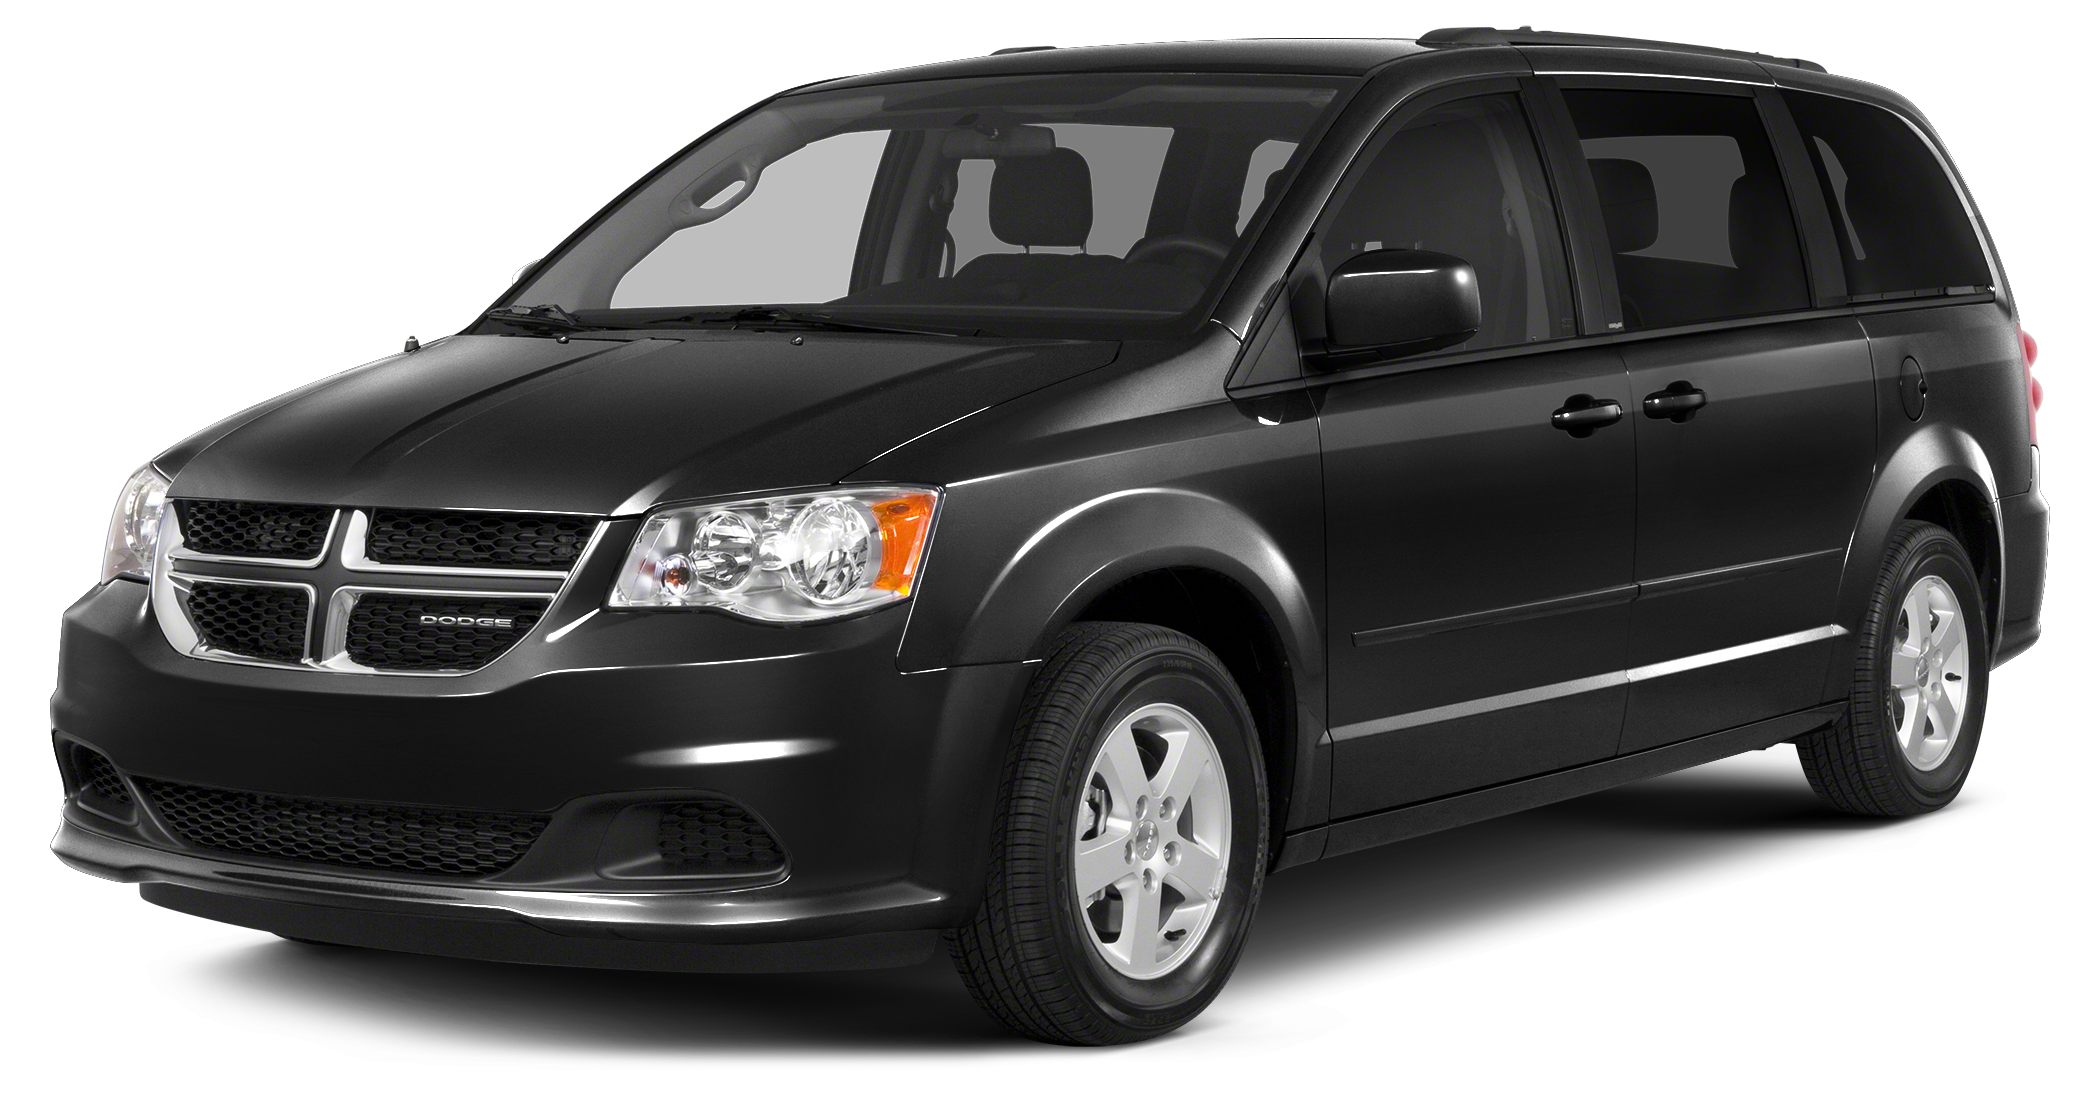 2013 Dodge Grand Caravan SXT Miles 94736Color Black Stock U2417 VIN 2C4RDGCG1DR688163